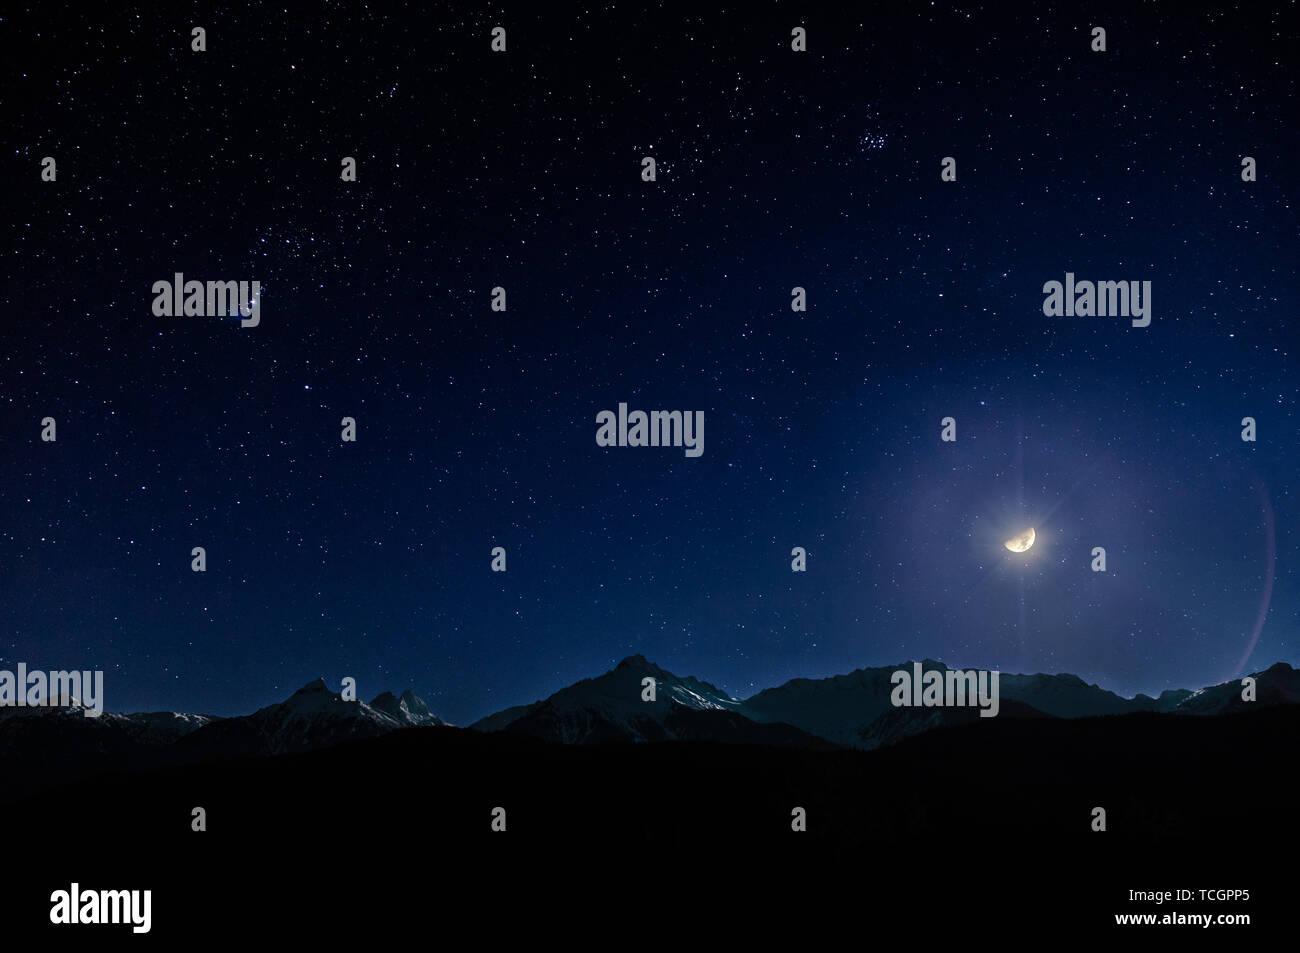 Snow covered mountain range at night under a starry sky and a bright moon. - Stock Image